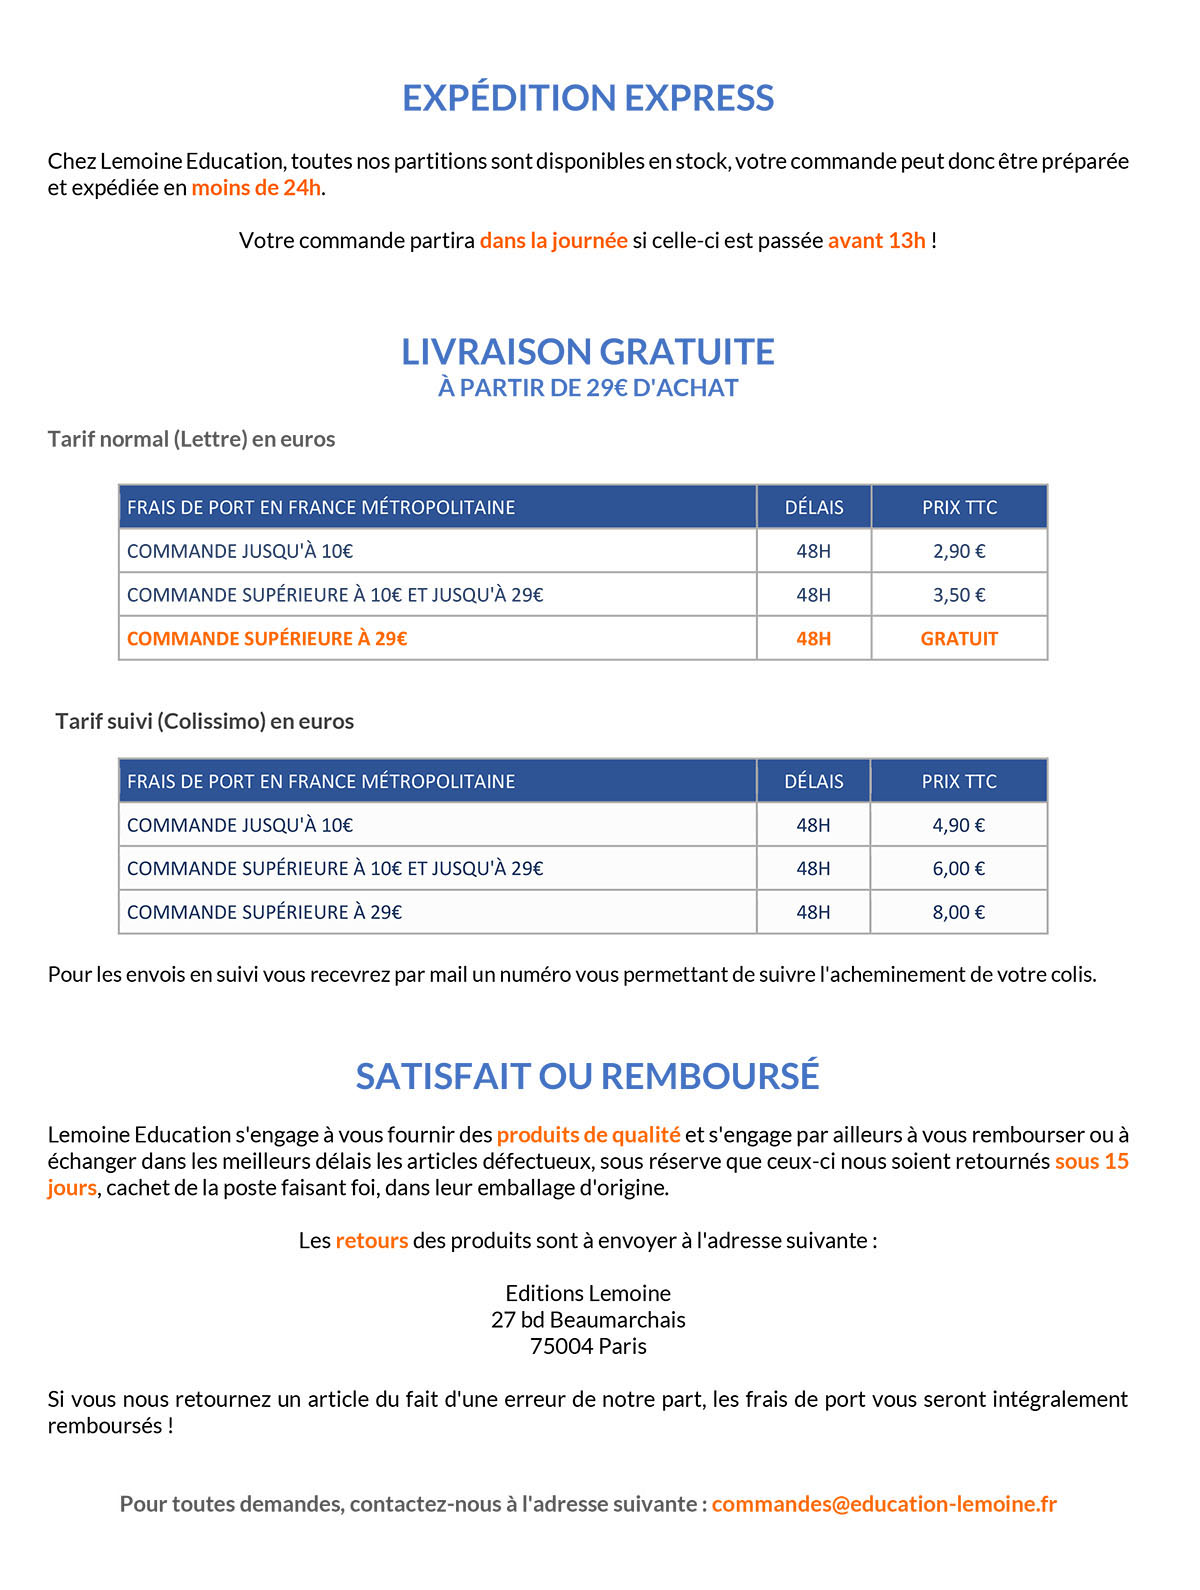 Lemoine-education_boutique-services_6